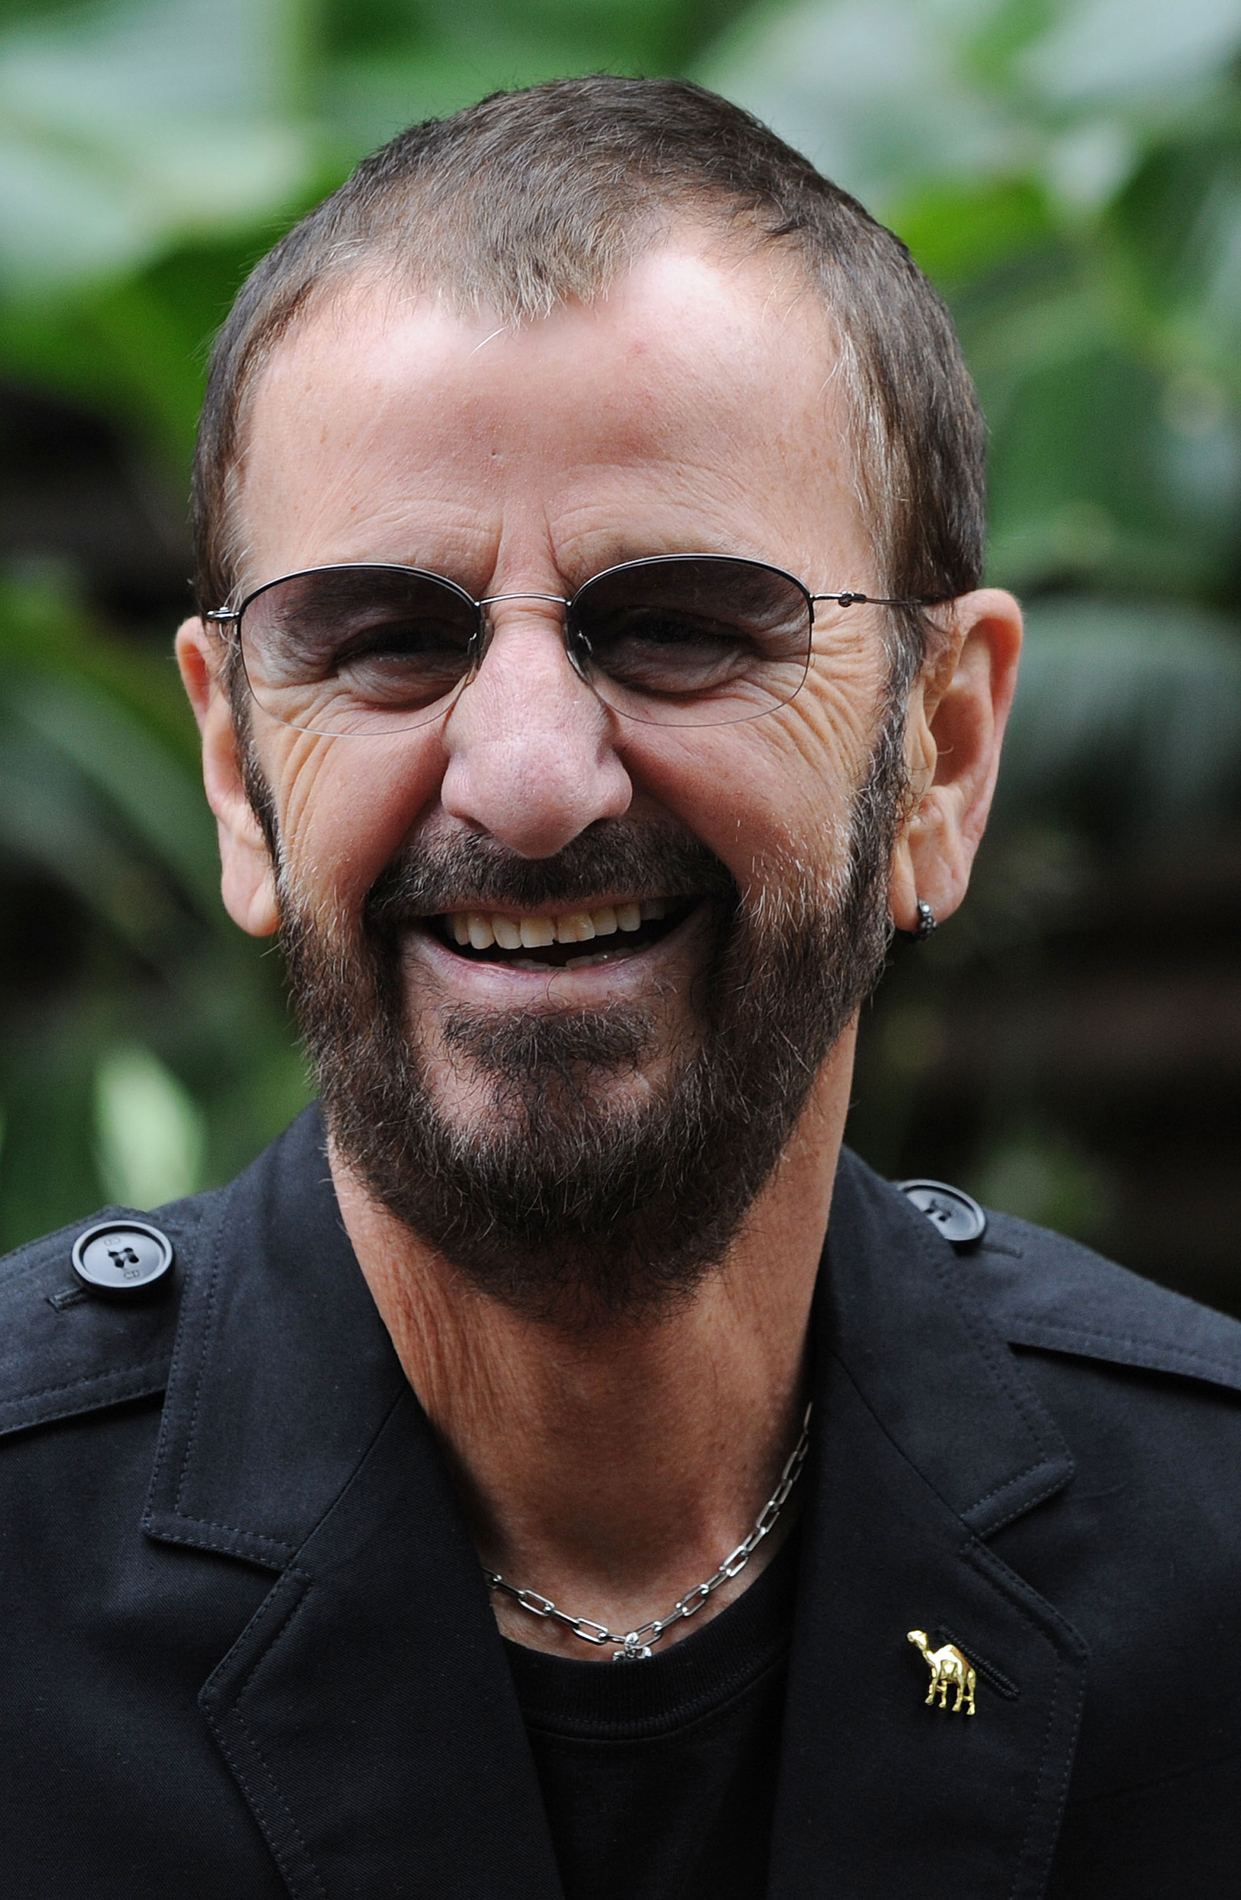 ringo starr wingsringo starr discography, ringo starr photograph, ringo starr only you, ringo starr 2017, ringo starr son, ringo starr wiki, ringo starr twitter, ringo starr goodnight vienna, ringo starr instagram, ringo starr la de da, ringo starr ringo, ringo starr скачать, ringo starr liverpool, ringo starr lp, ringo starr - postcards from paradise, ringo starr height, ringo starr sentimental journey, ringo starr wings, ringo starr beatles, ringo starr which beatle are you